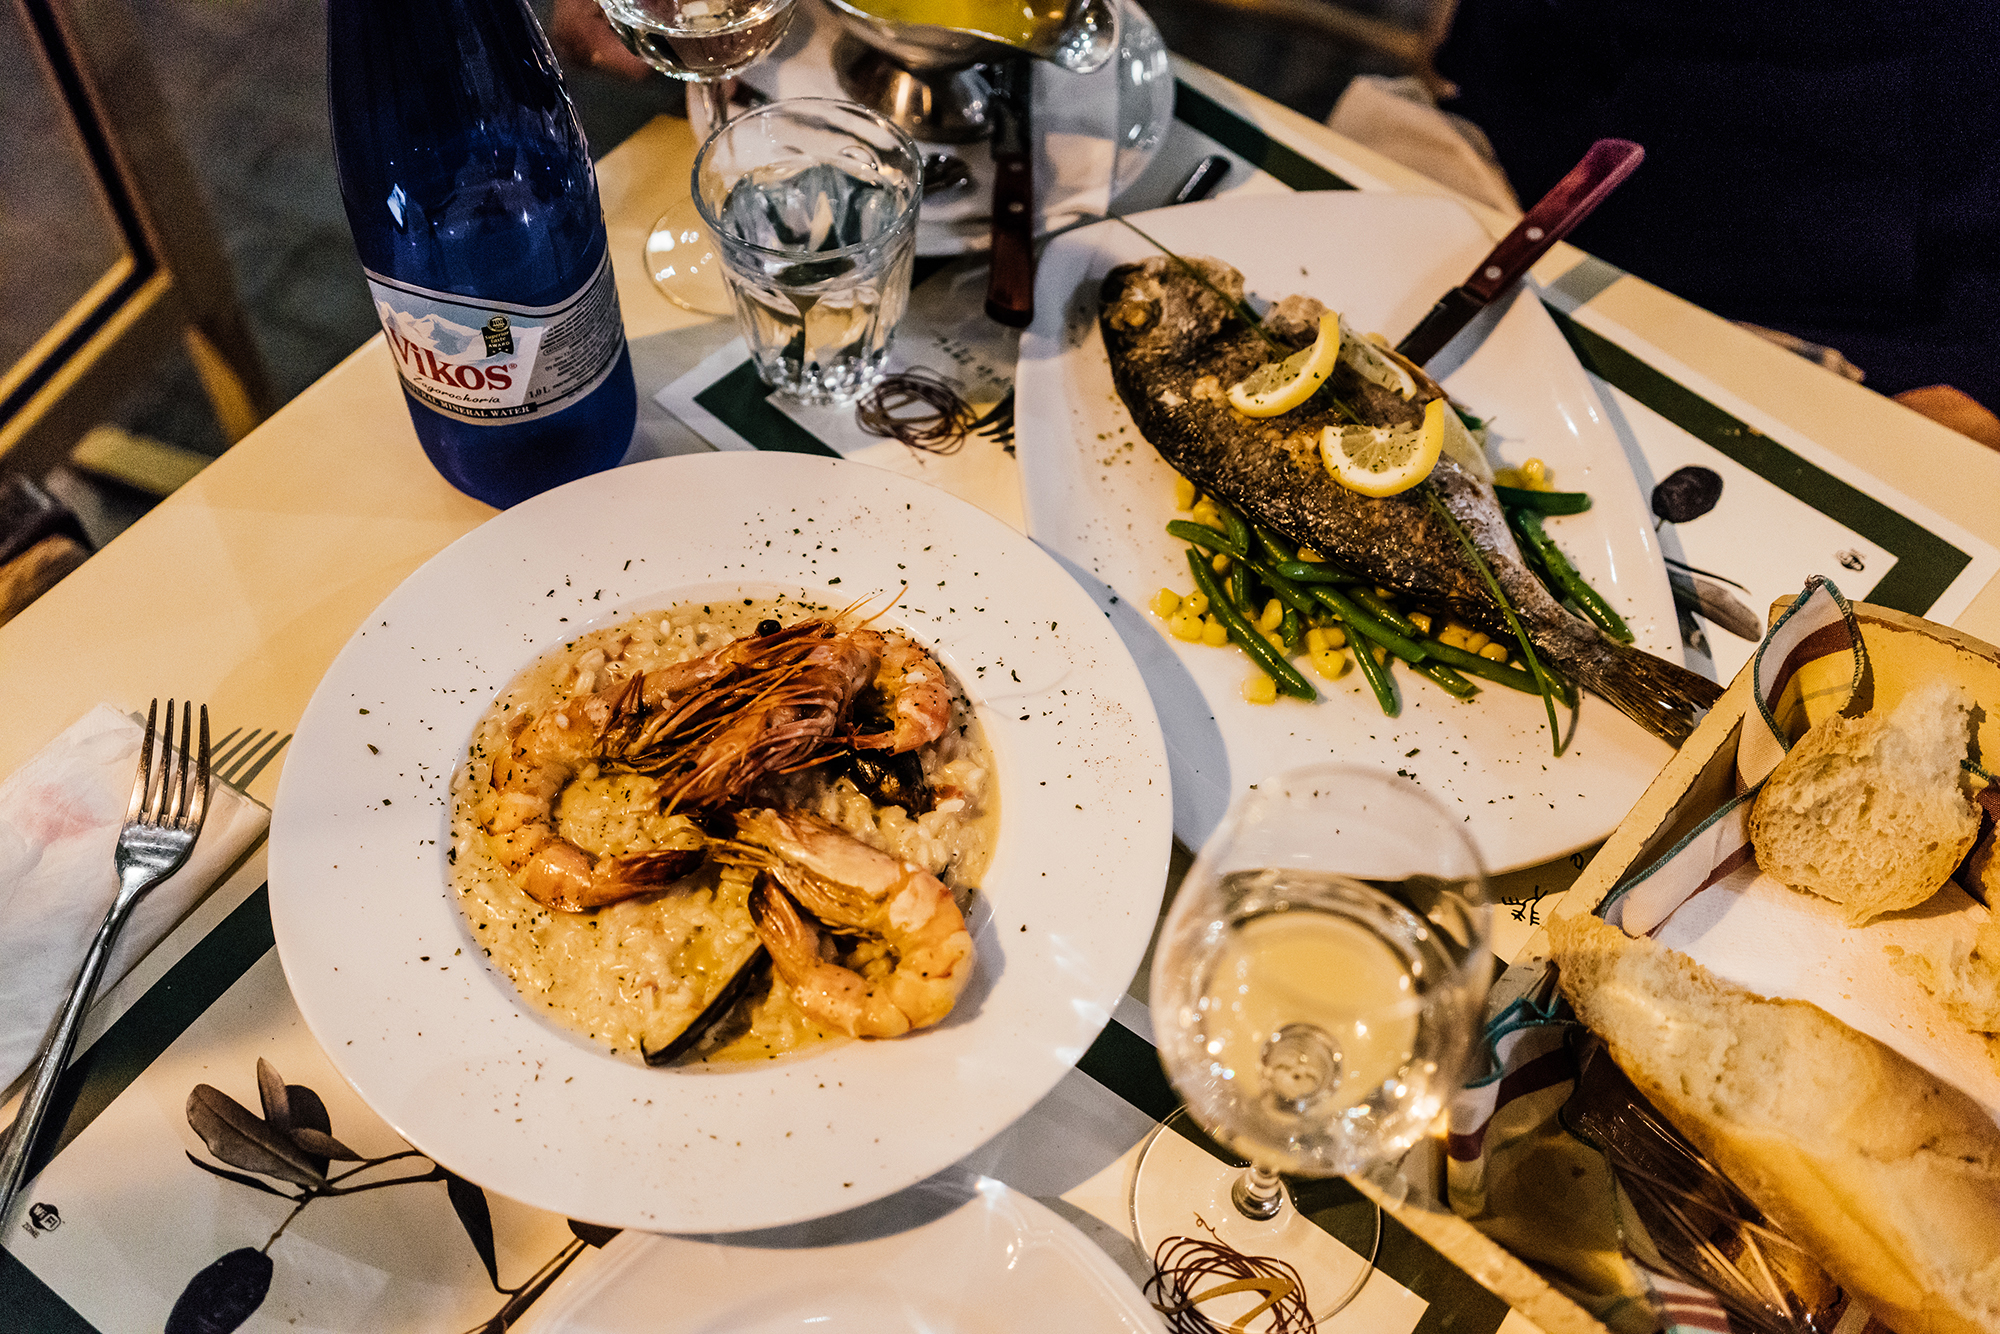 Seafood Risotto and Fish of the day